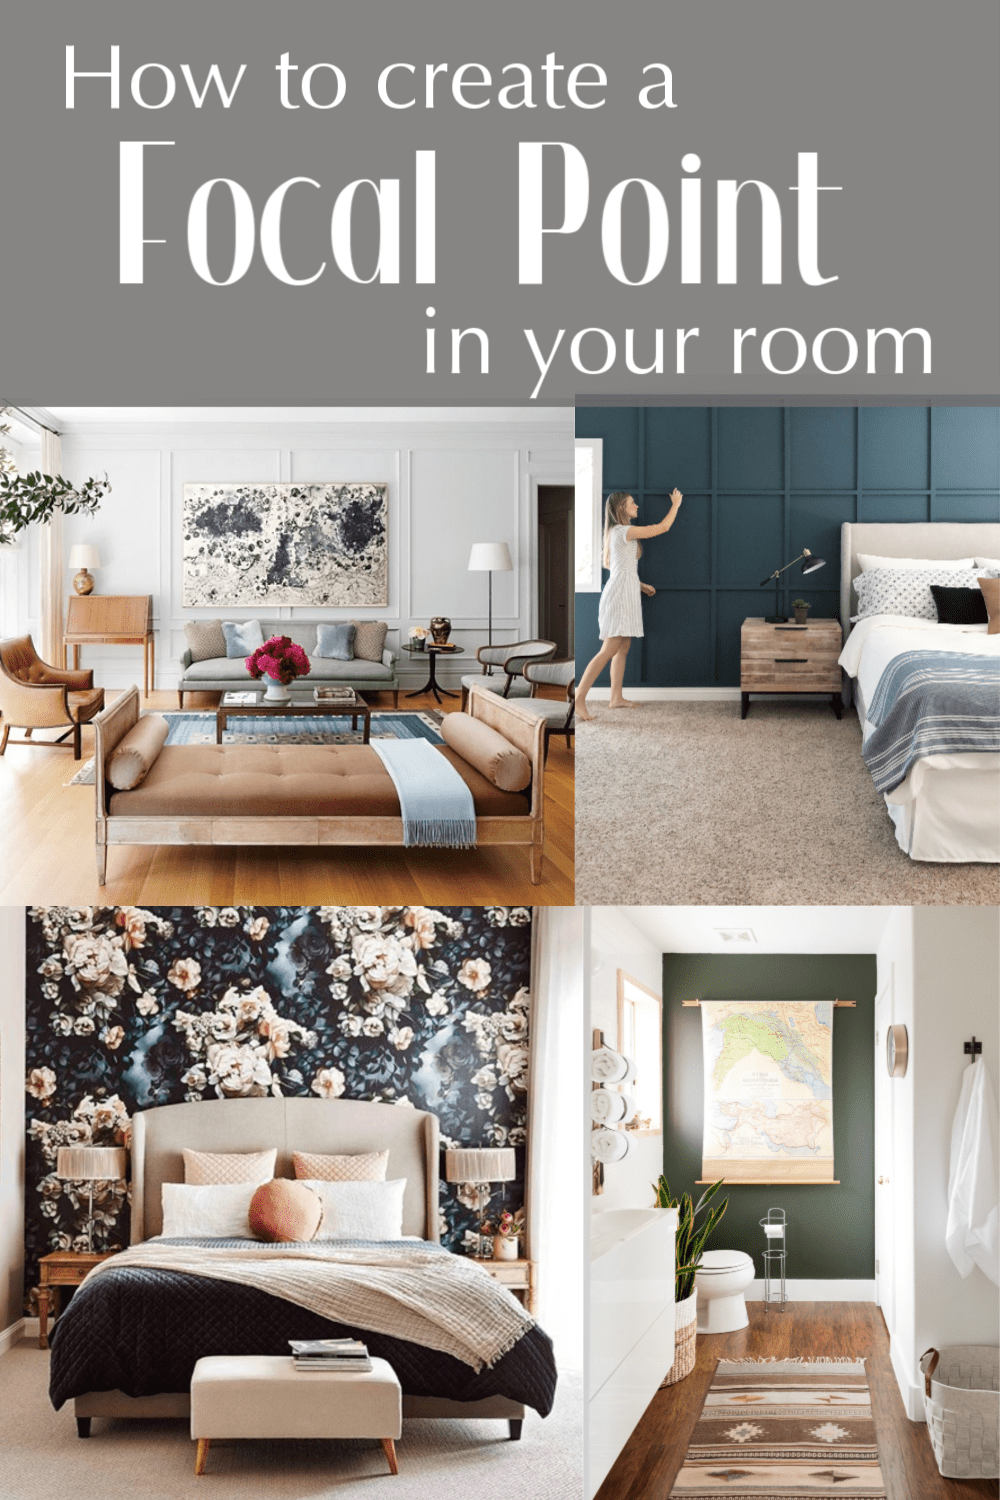 Learn how to create a focal point in your room like adding a wood feature wall, using wallpaper, a large piece of artwork,  or a bold painted feature wall.  You can also accent architectural elements in a room like a fireplace, large windows, or builtins.  #focalpoint #interiordesign #decoratingtips